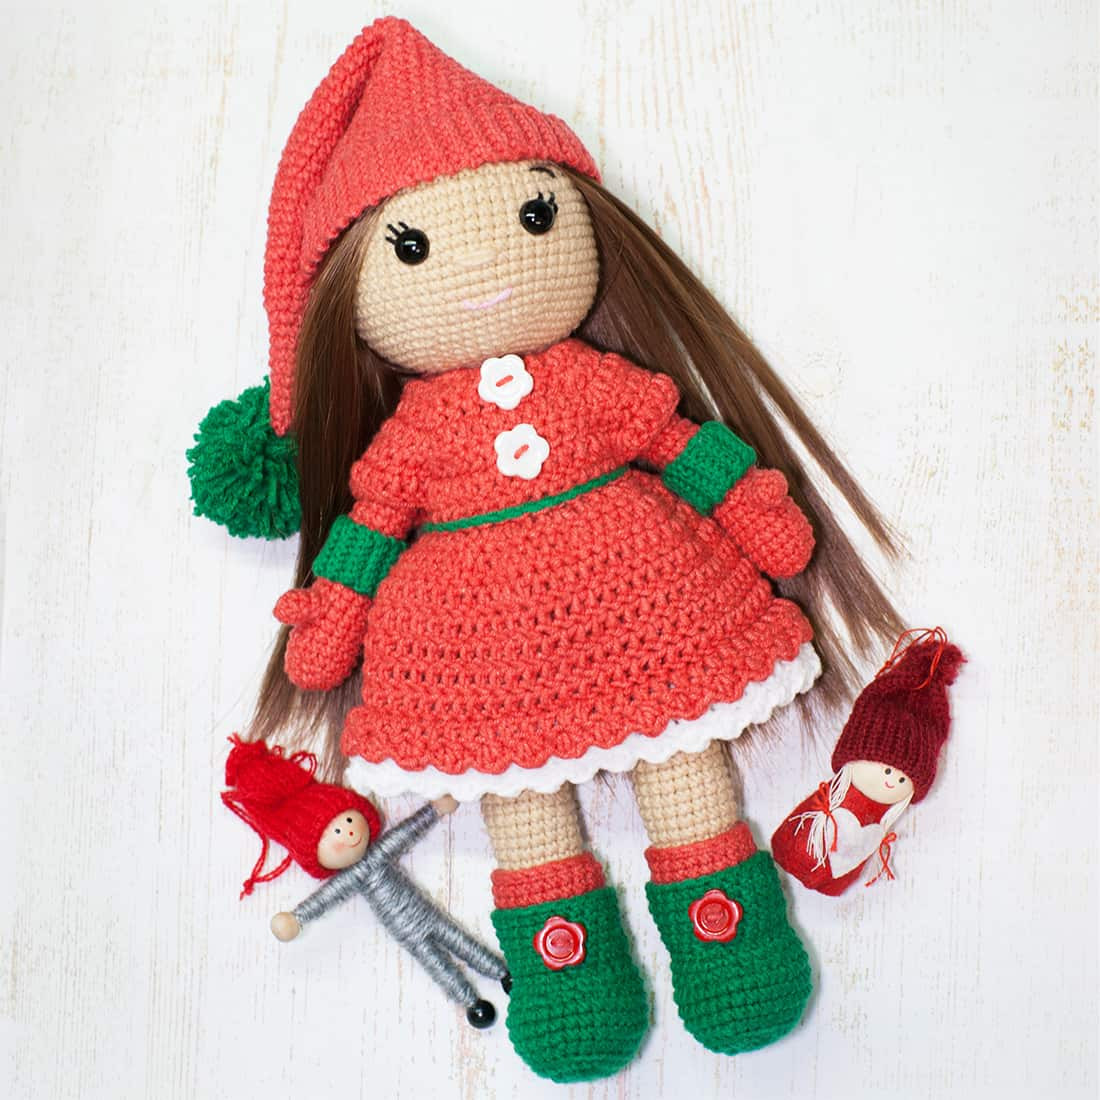 Doll Patterns New Christmas Doll Crochet Pattern Amigurumi today Of Doll Patterns Best Of Rag Doll Patterns